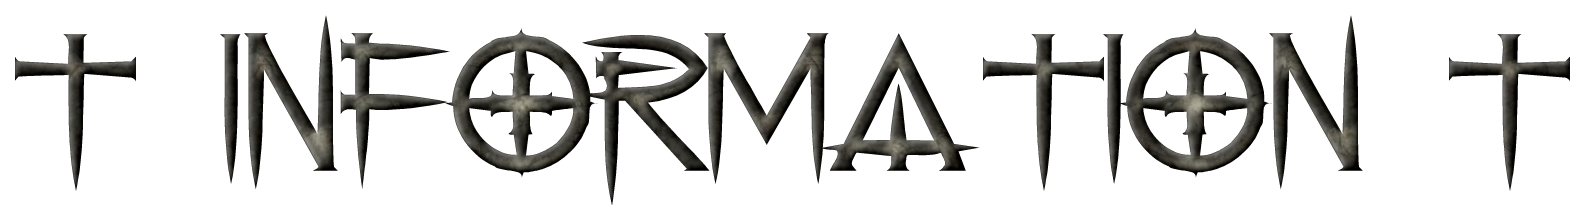 3d png effect. Image d marble text